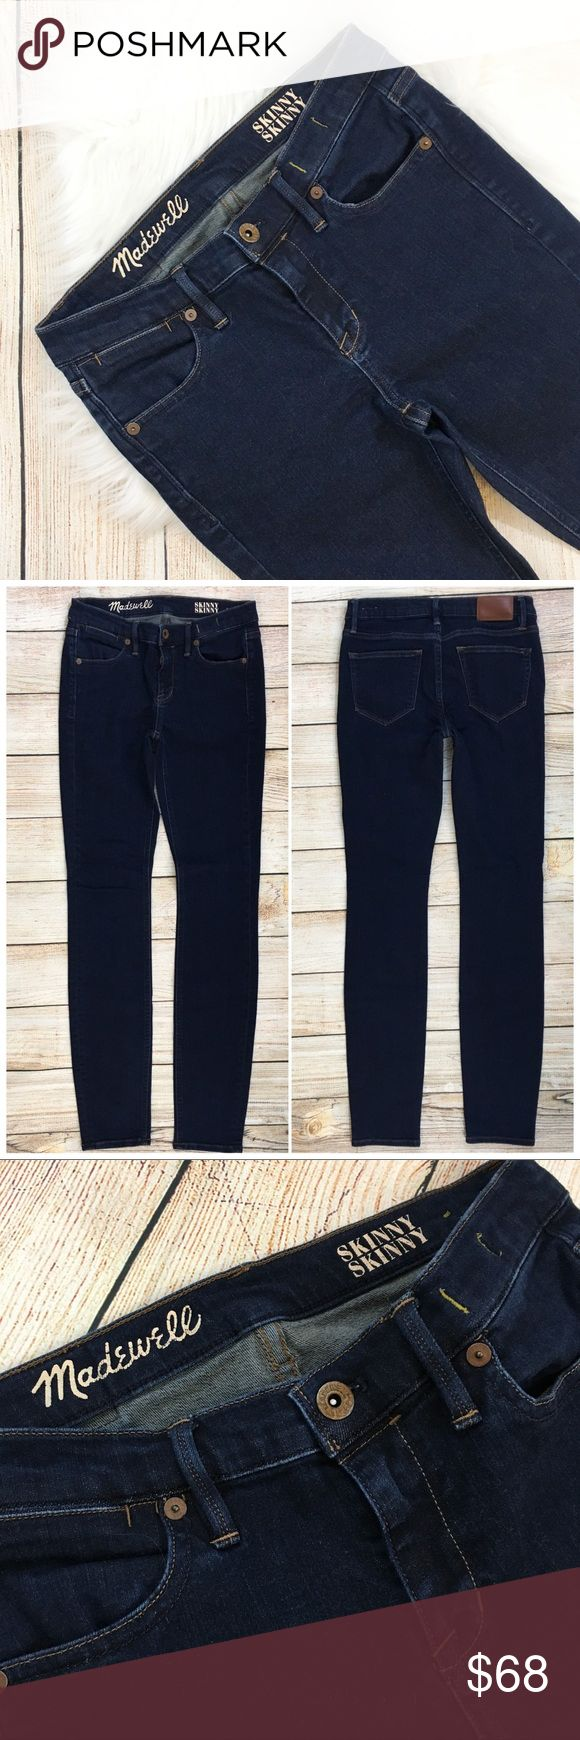 "{Madewell} Indigo Wash Skinny Skinny Denim Jeans BRAND: Madewell ITEM: Indigo Wash Skinny Skinny Jeans FEATURES: Zip Fly FABRIC: 93% Cotton, 6% Polyester, 1% Spandex  SIZE: 26  CONDITION: Pre-Owned/EUC  MEASUREMENTS Waist: 14"" Inseam: 31"" Rise: 8""  PLEASE NOTE: Measurements are approximate and taken while item is laying flat  ALL ITEMS SHIP FROM SMOKE FREE HOME. NO Trades. NO Holds. NO PayPal. NO Lowball Offers. Offer Button Only. Madewell Jeans Skinny"